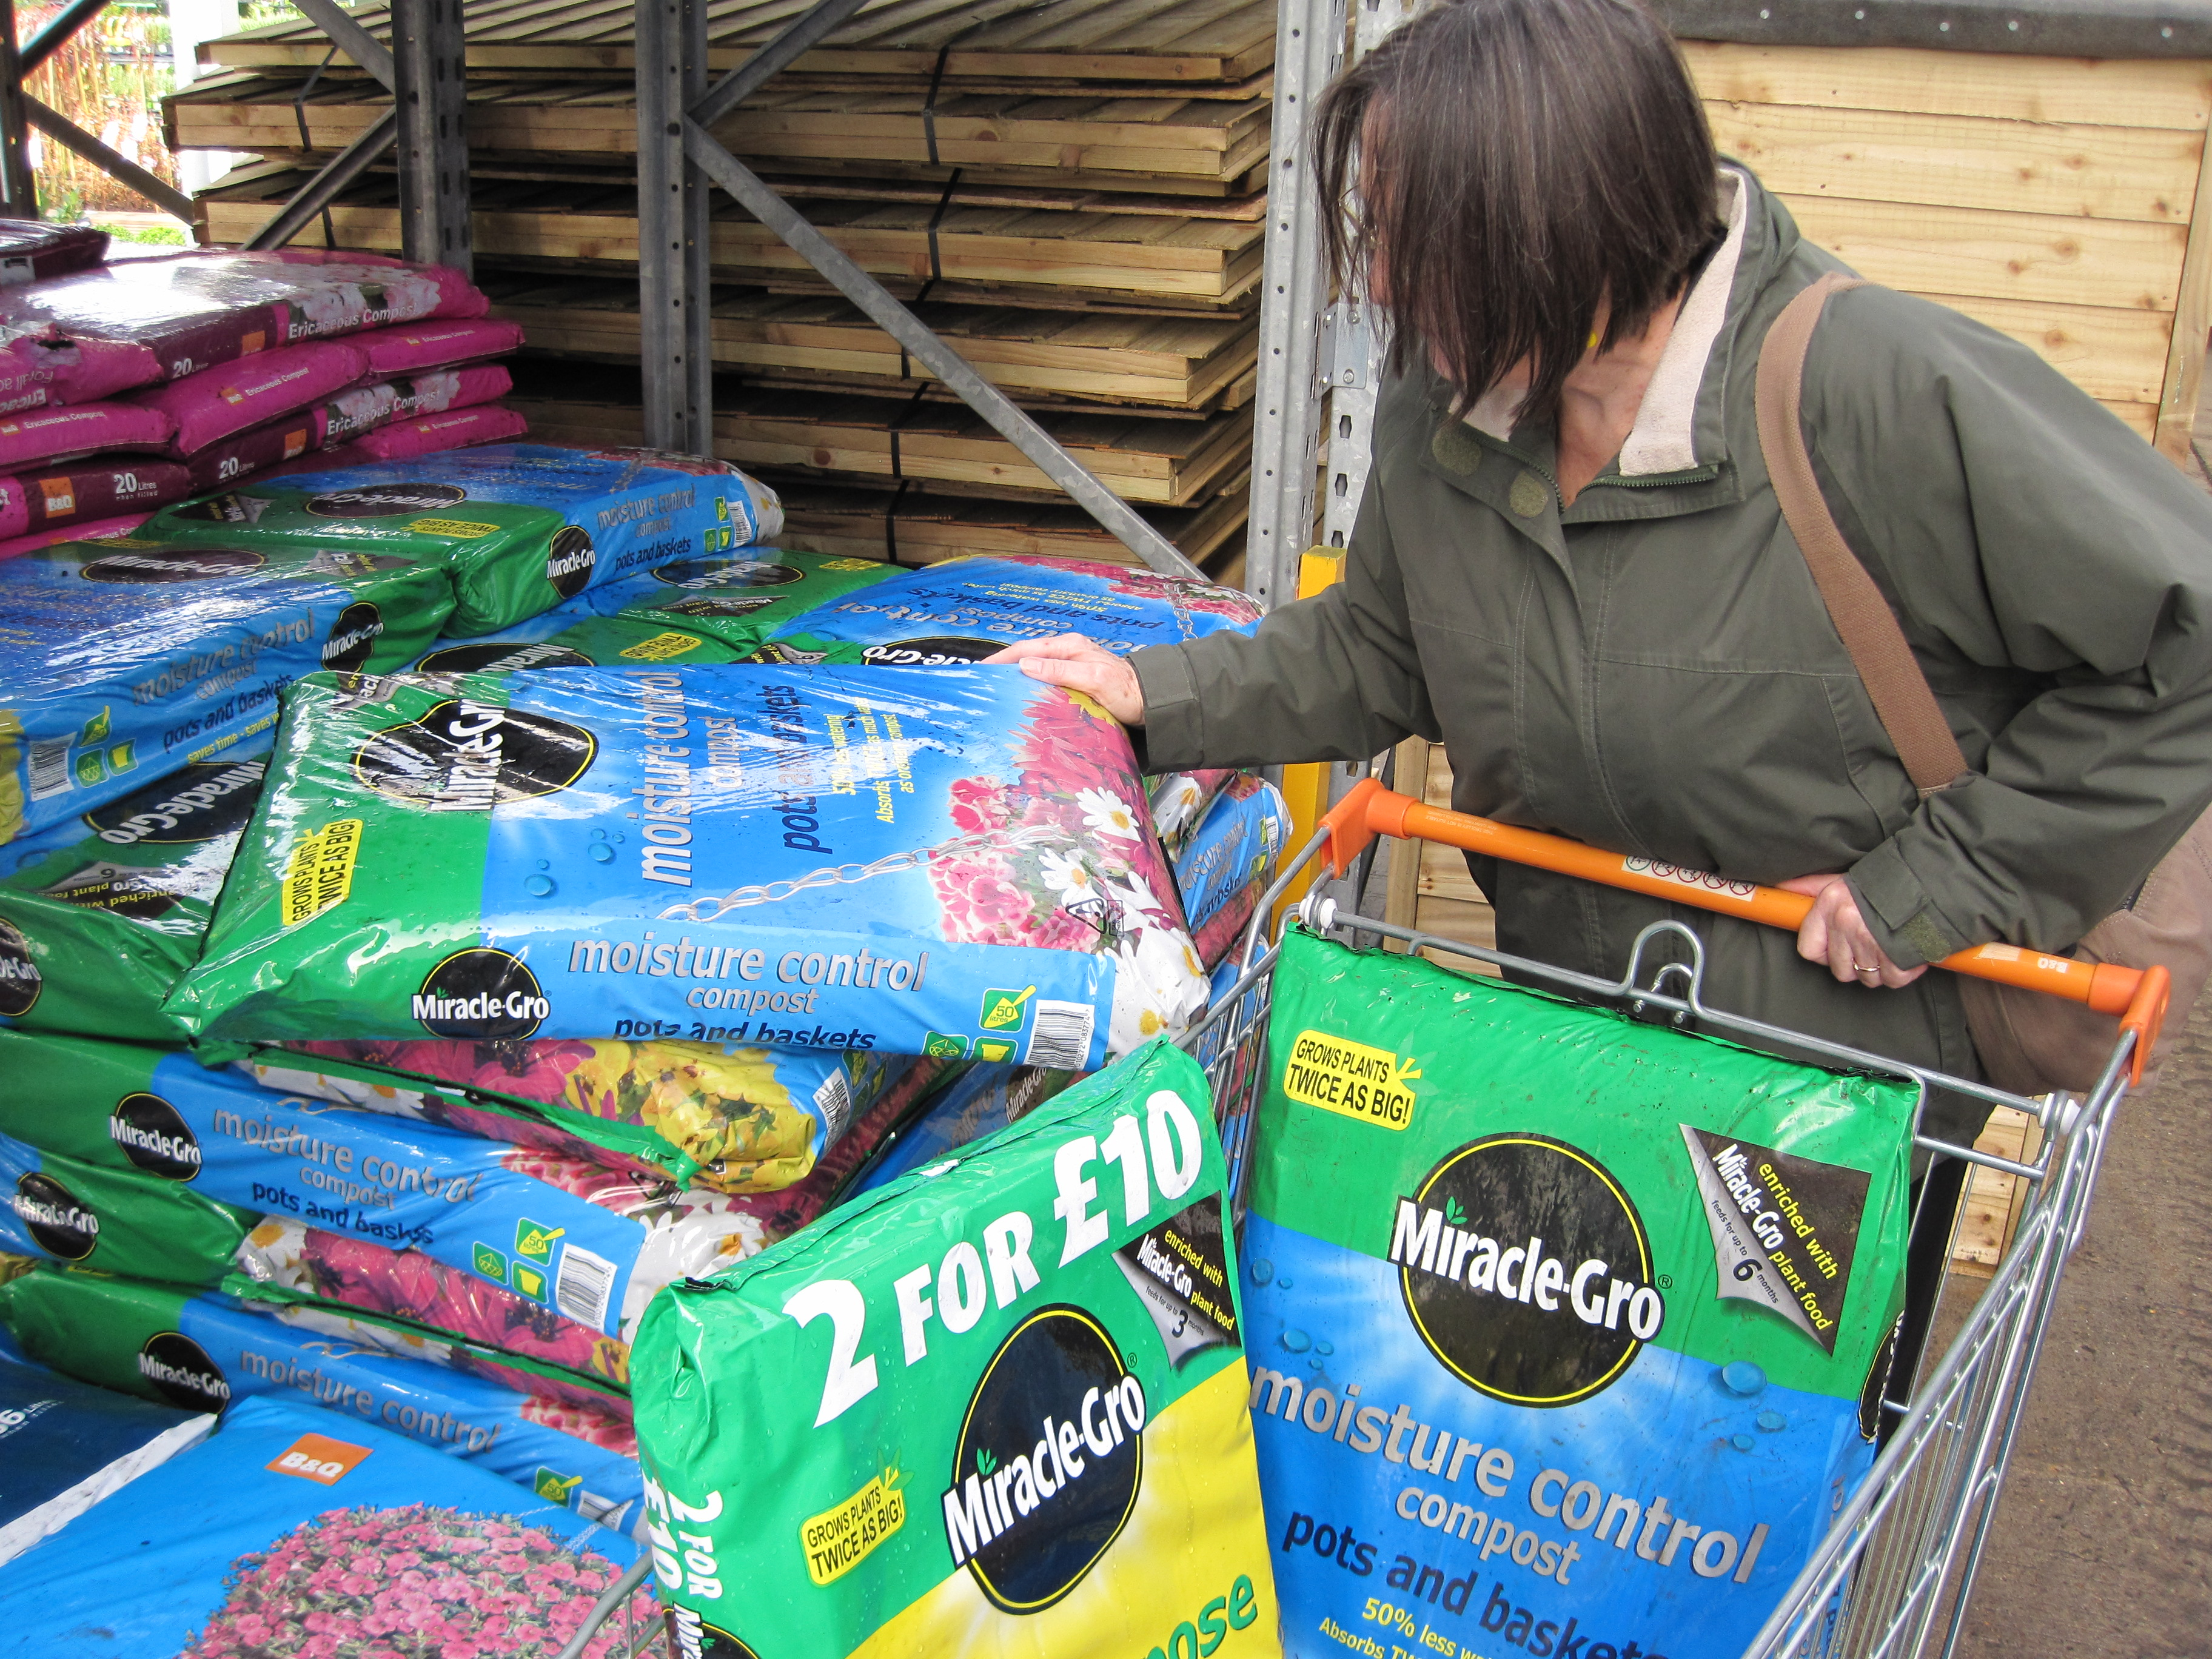 Shoppers urged to go peat-free - Amateur Gardening